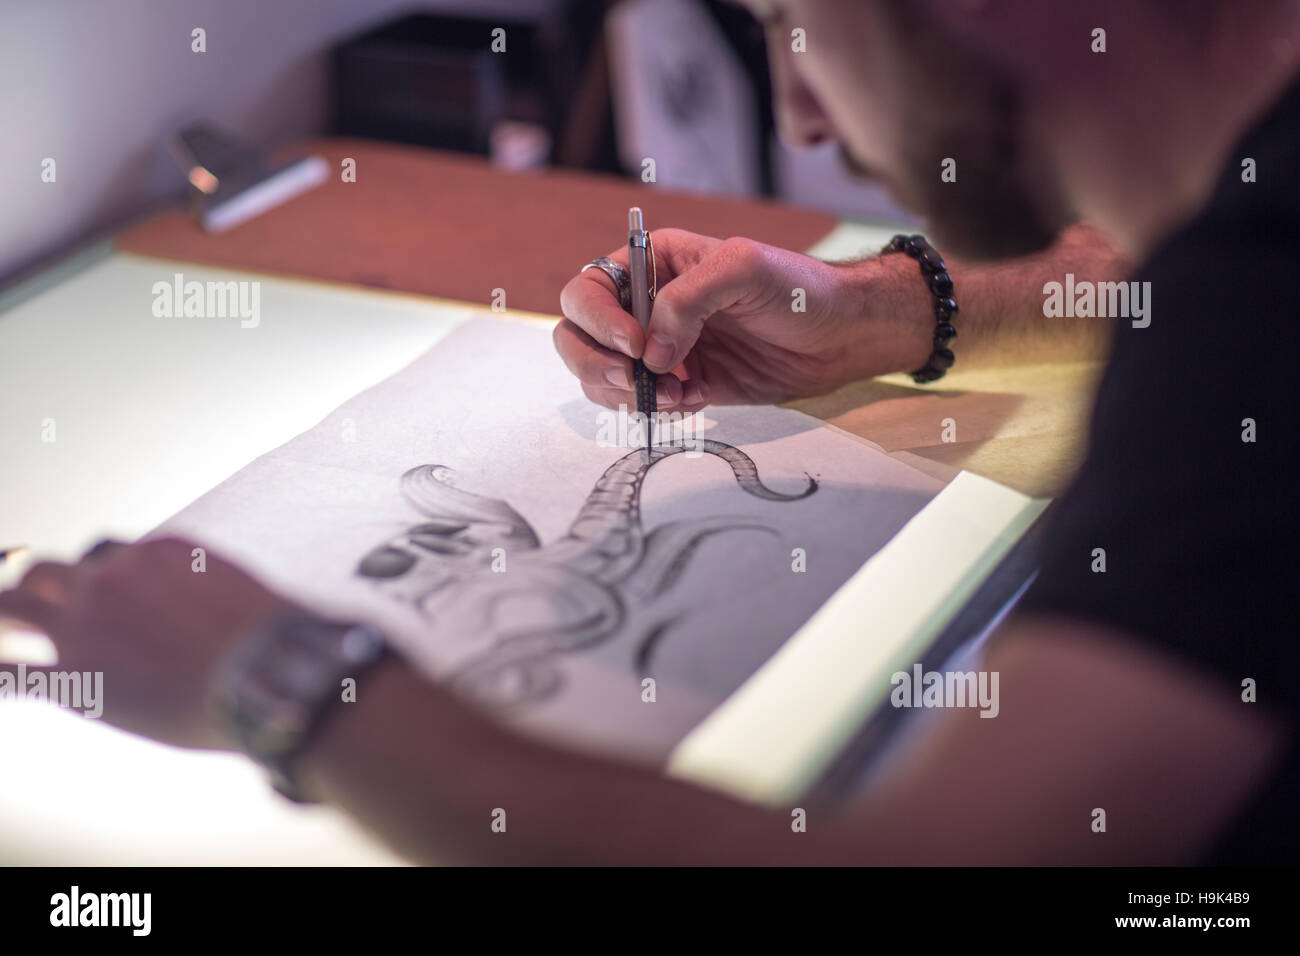 Graphic artist sketching - Stock Image